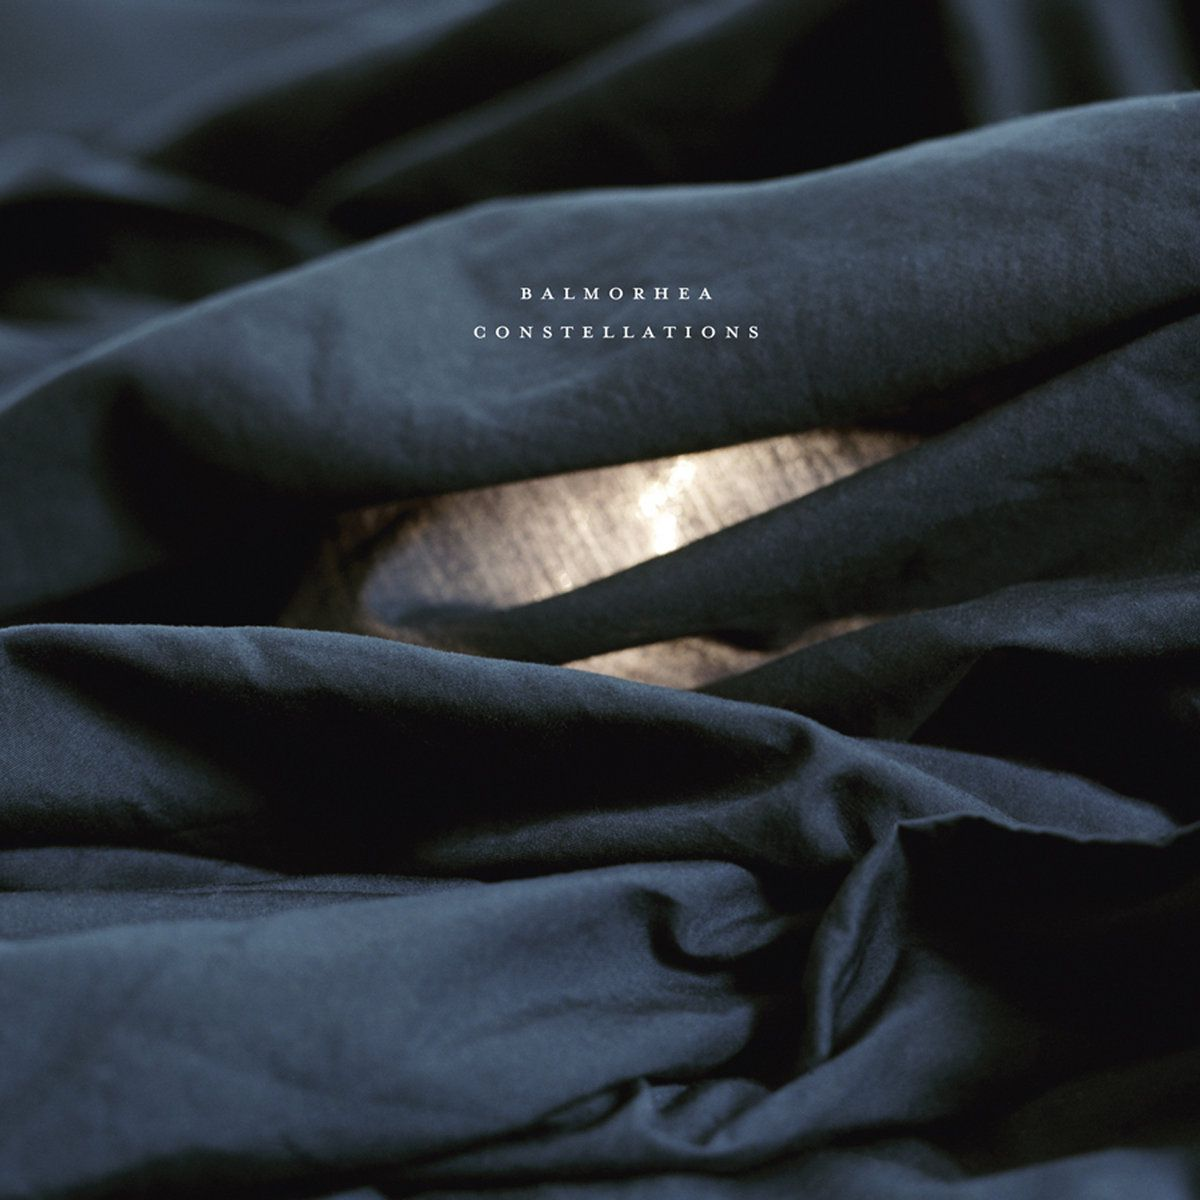 Balmorhea - Constellations / All is wild, All is silent